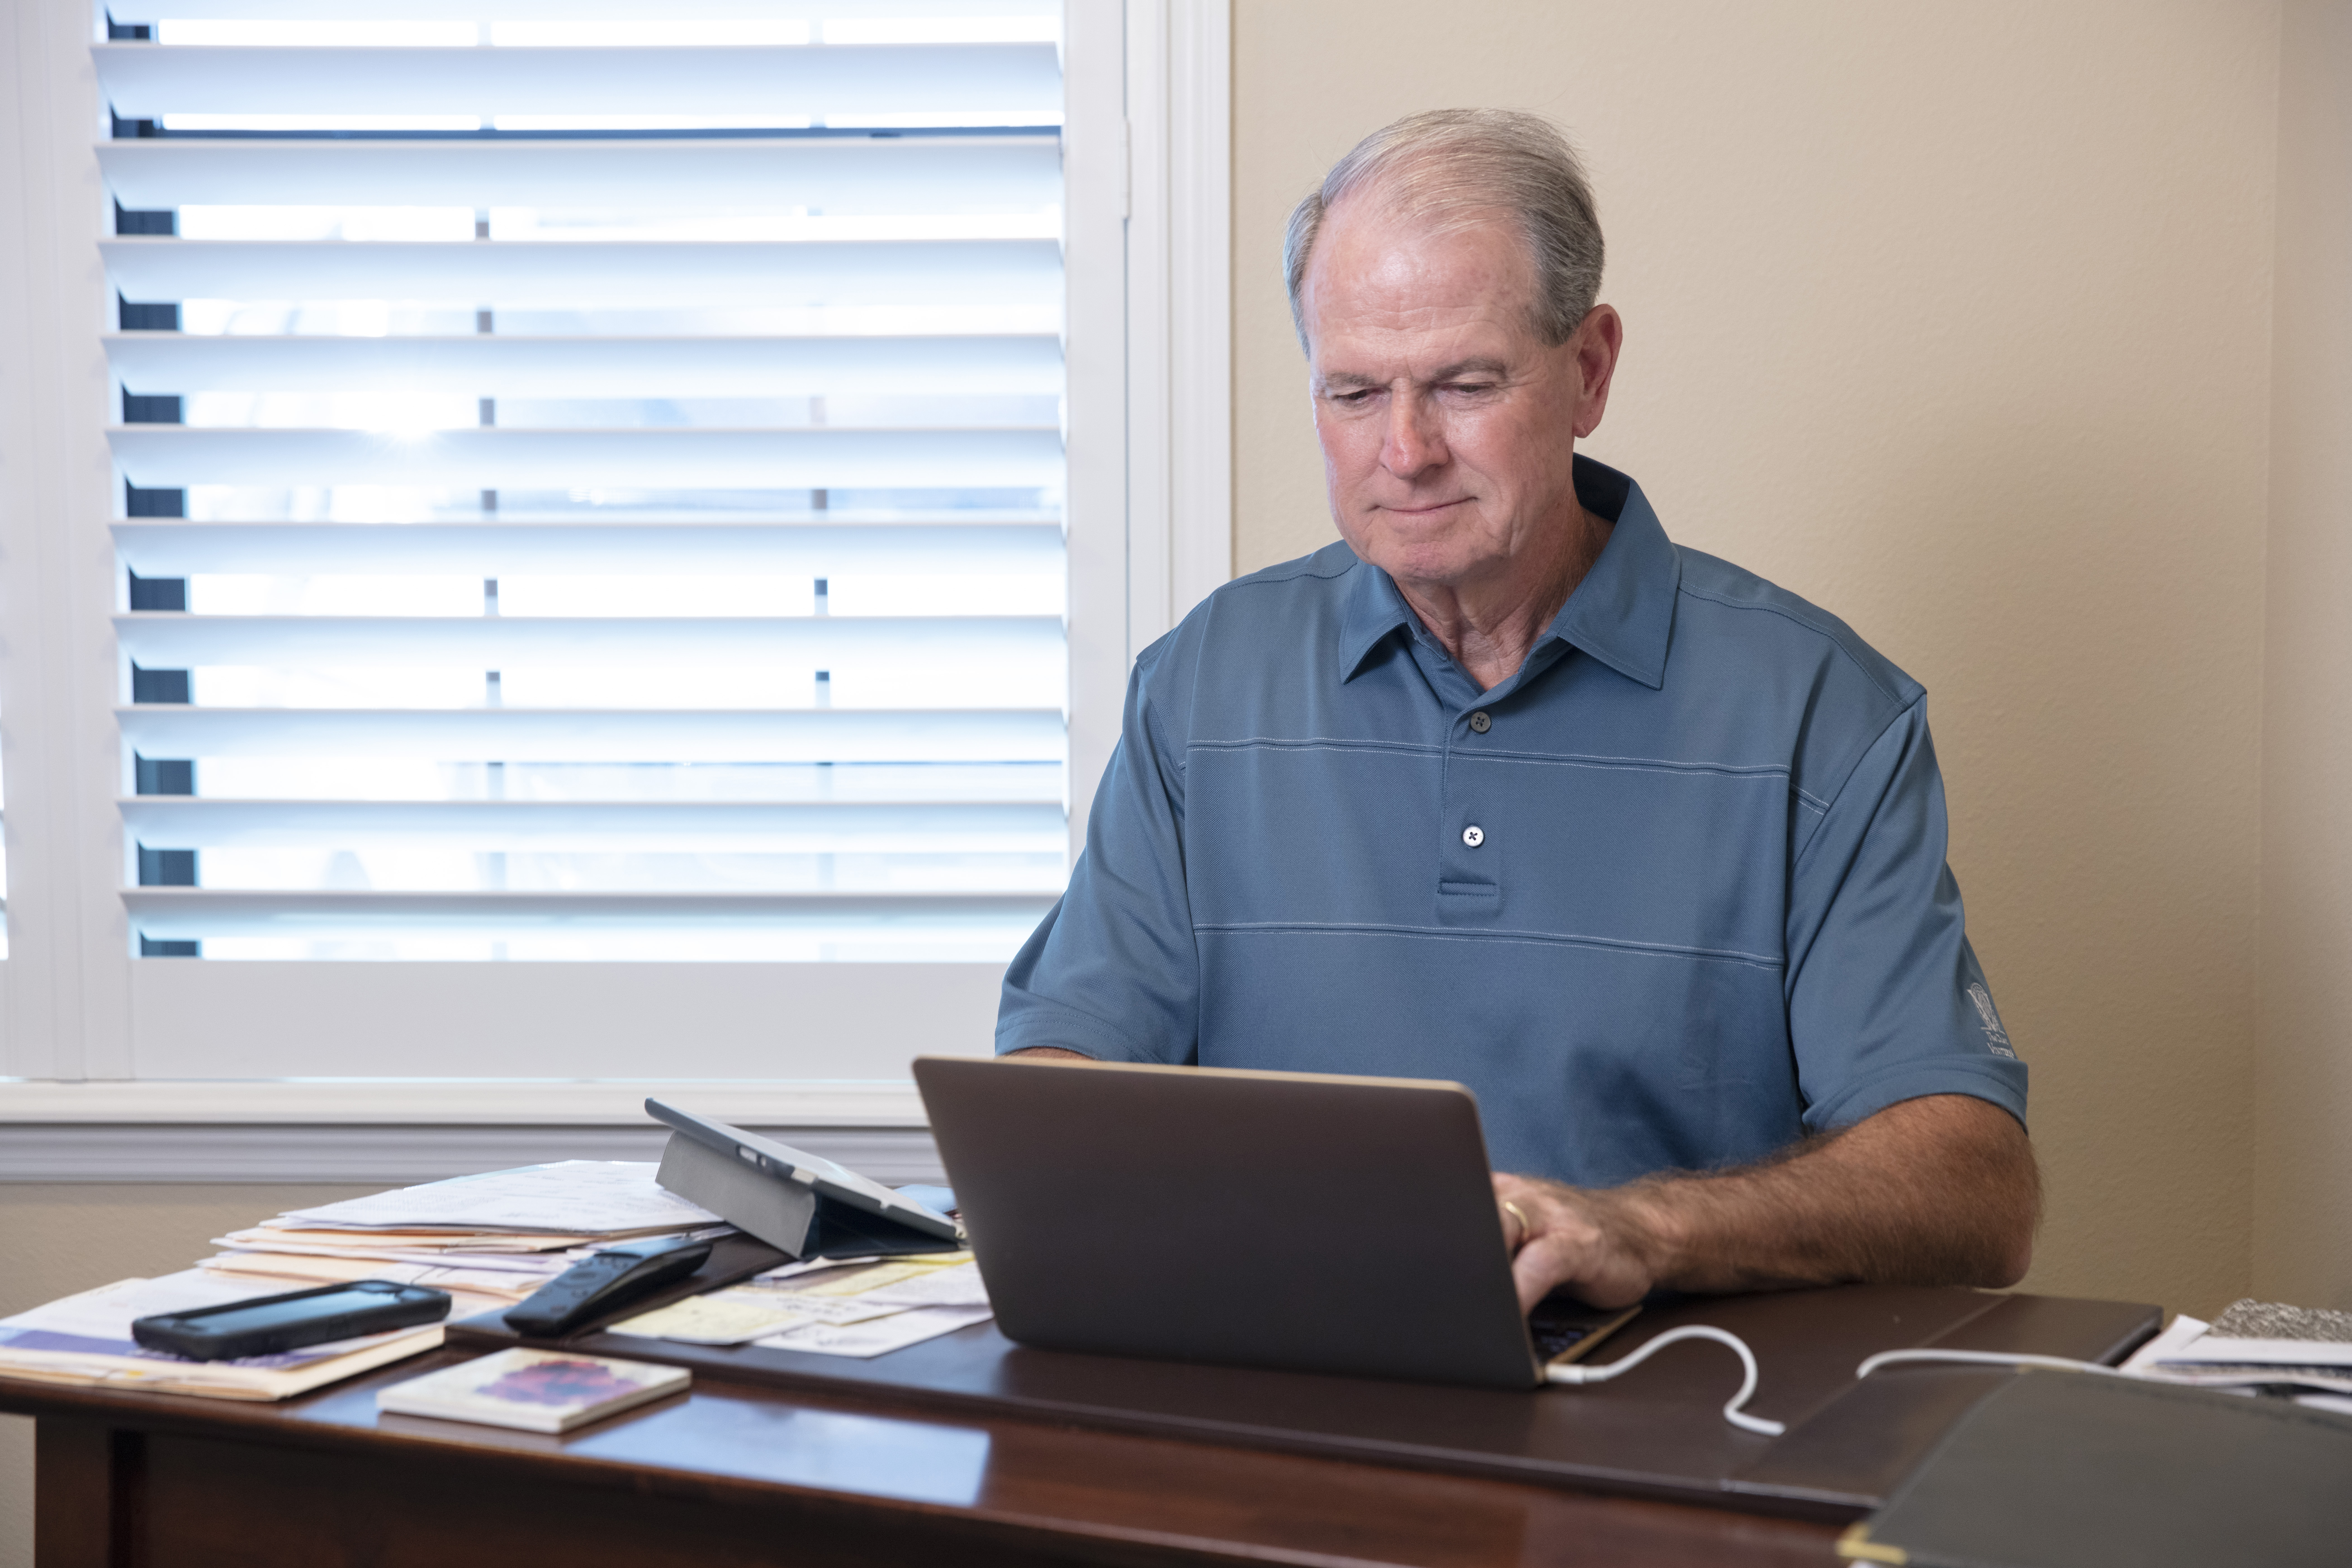 Man on laptop during a virtual visit.